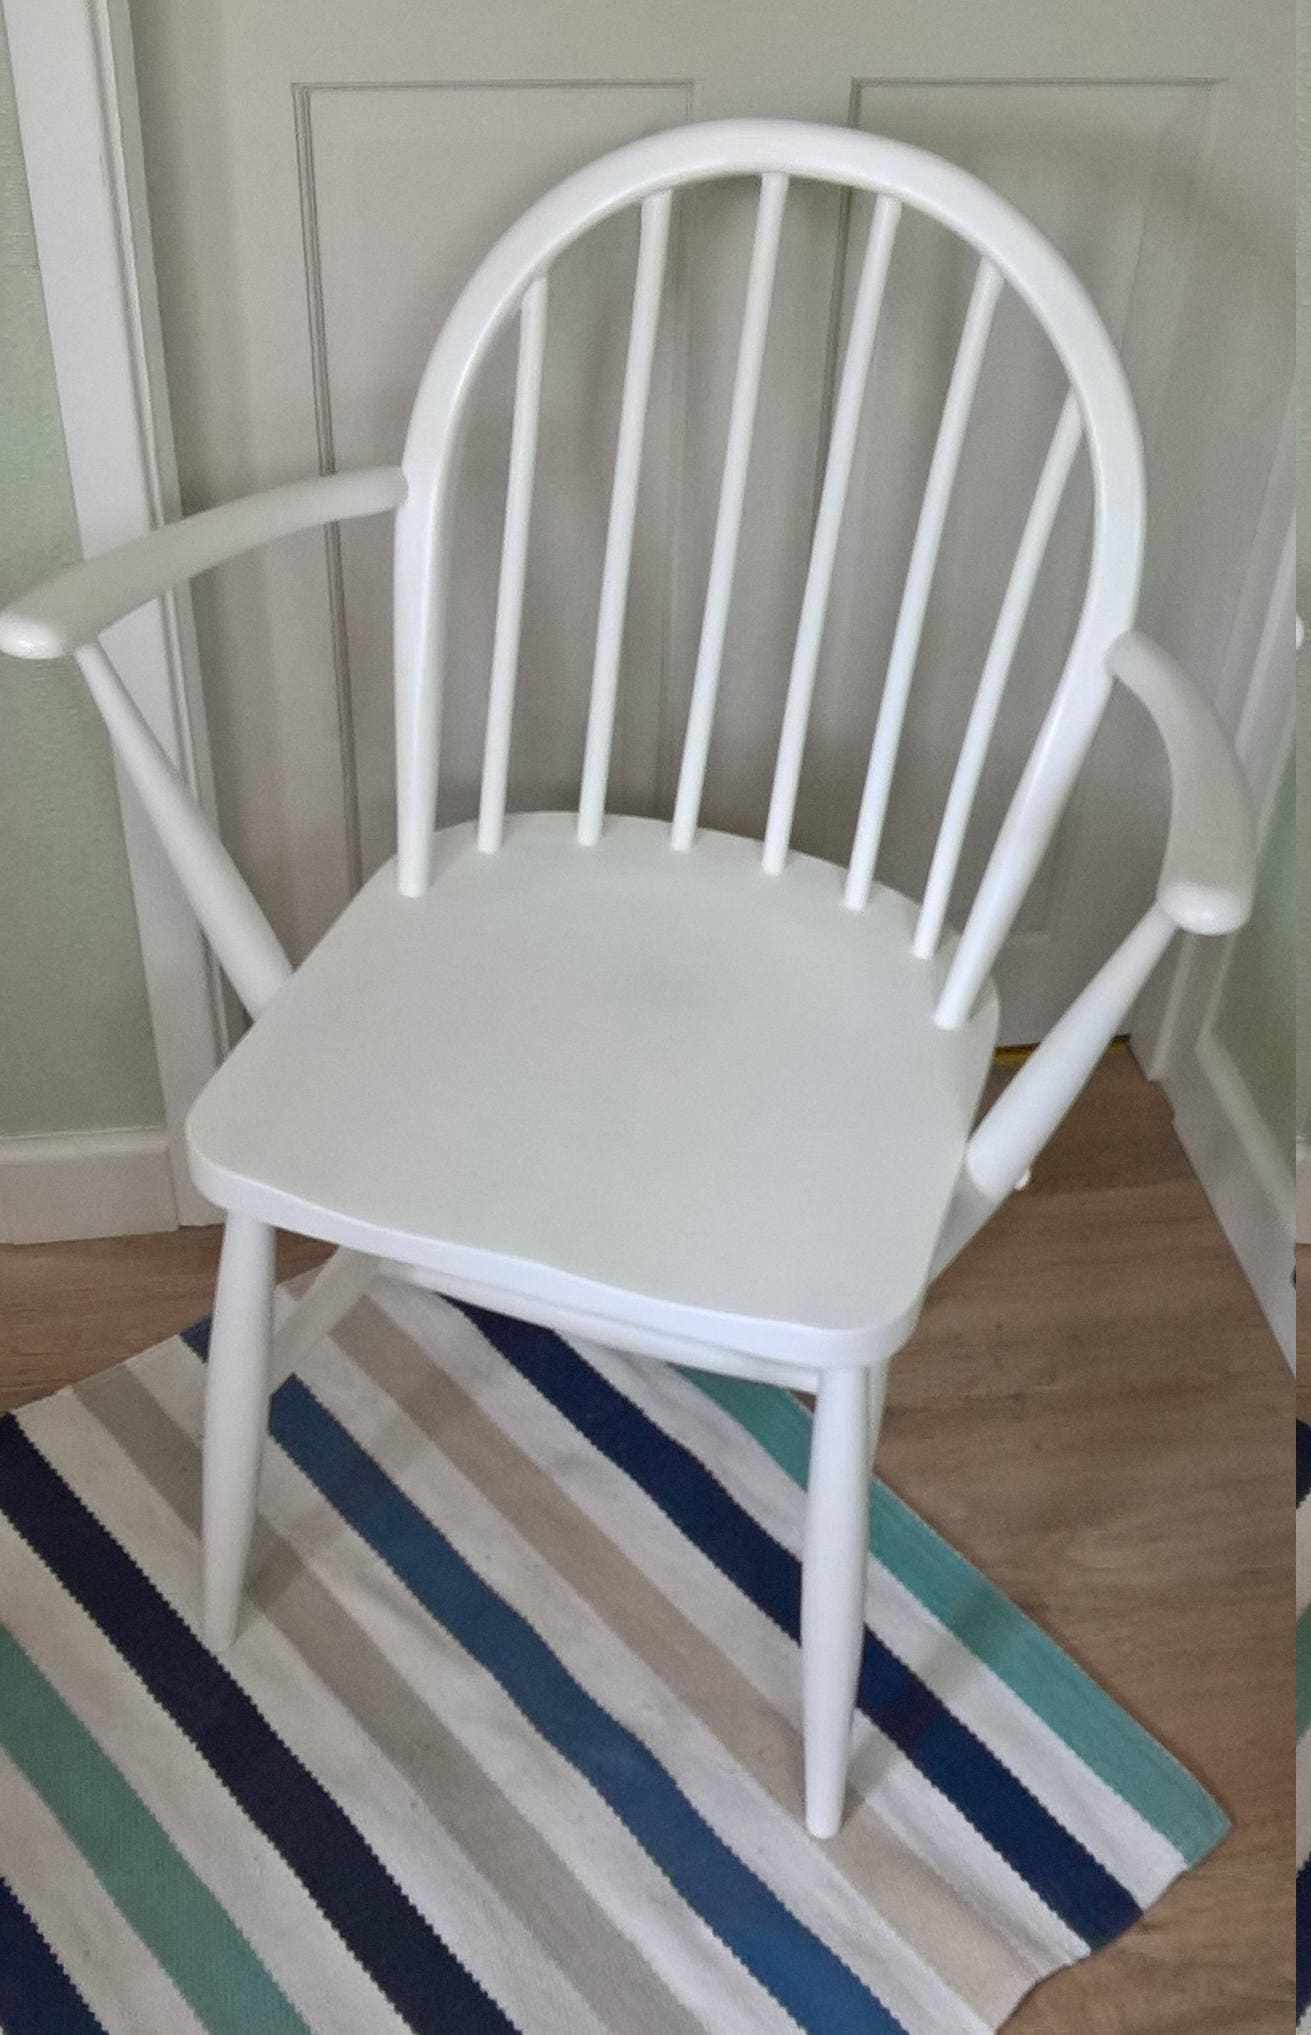 Ercol Rare 1950s Contemporary Windsor Carver Chair Refurbished in Annie Sloan Pure White